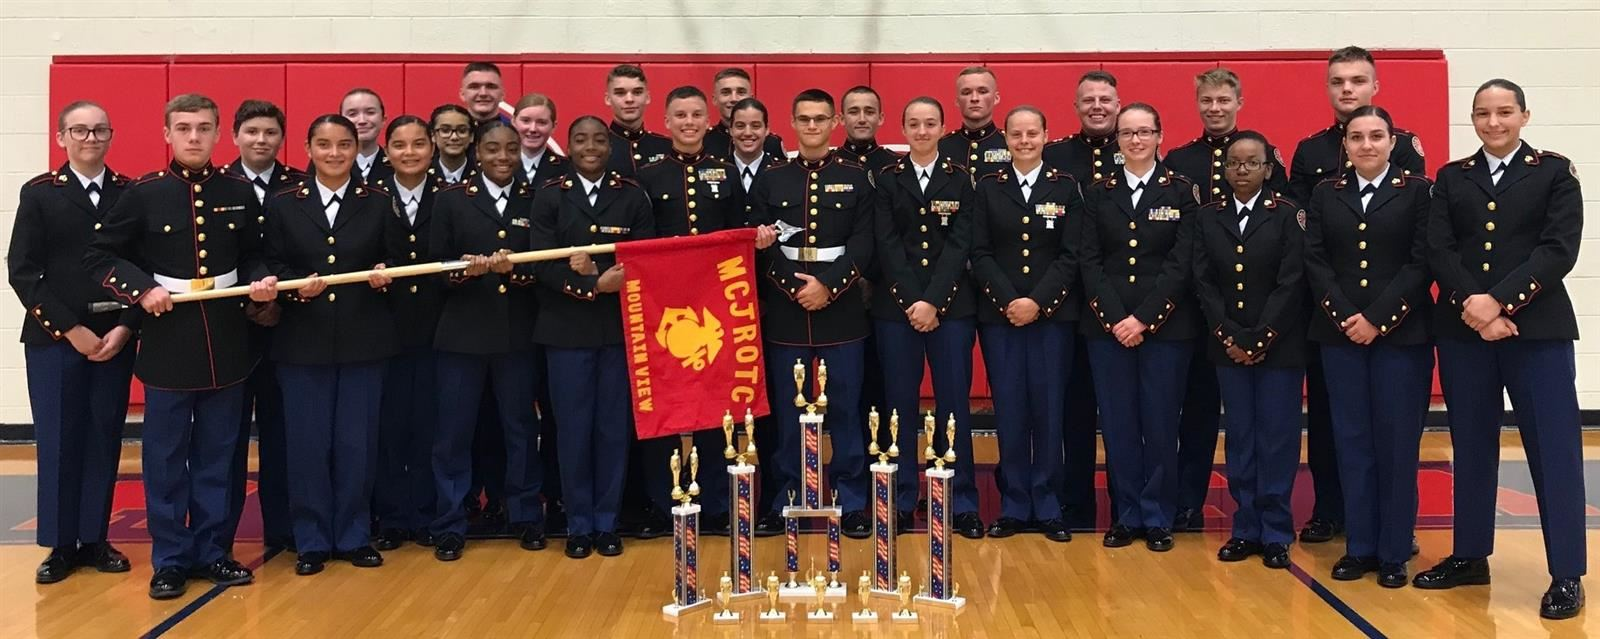 Mountain View High School MCJROTC on top